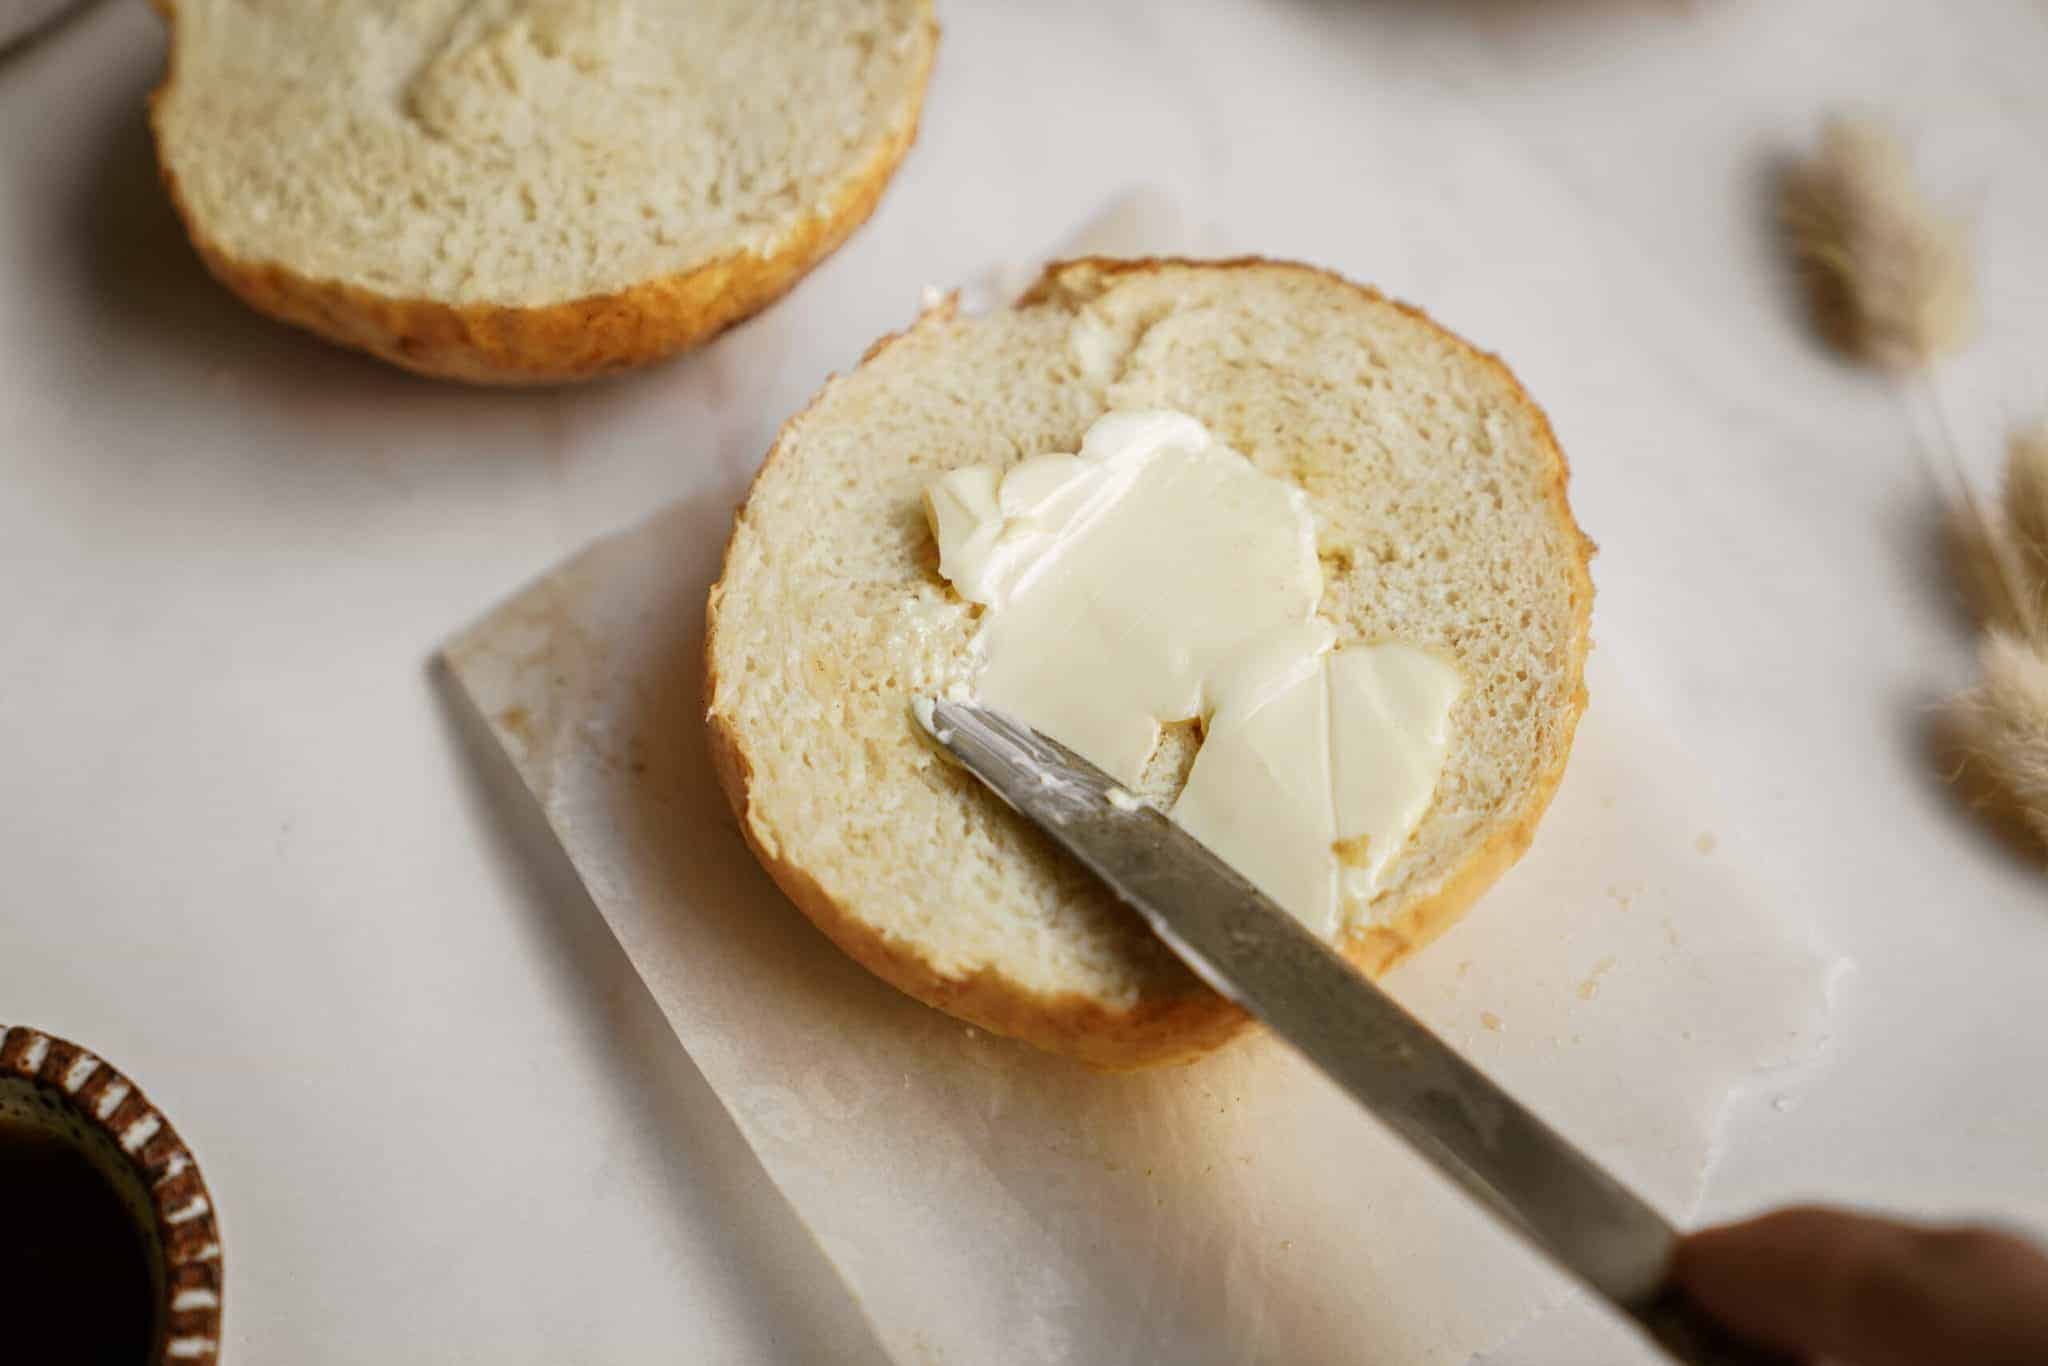 Butter being spread on dinner roll recipe